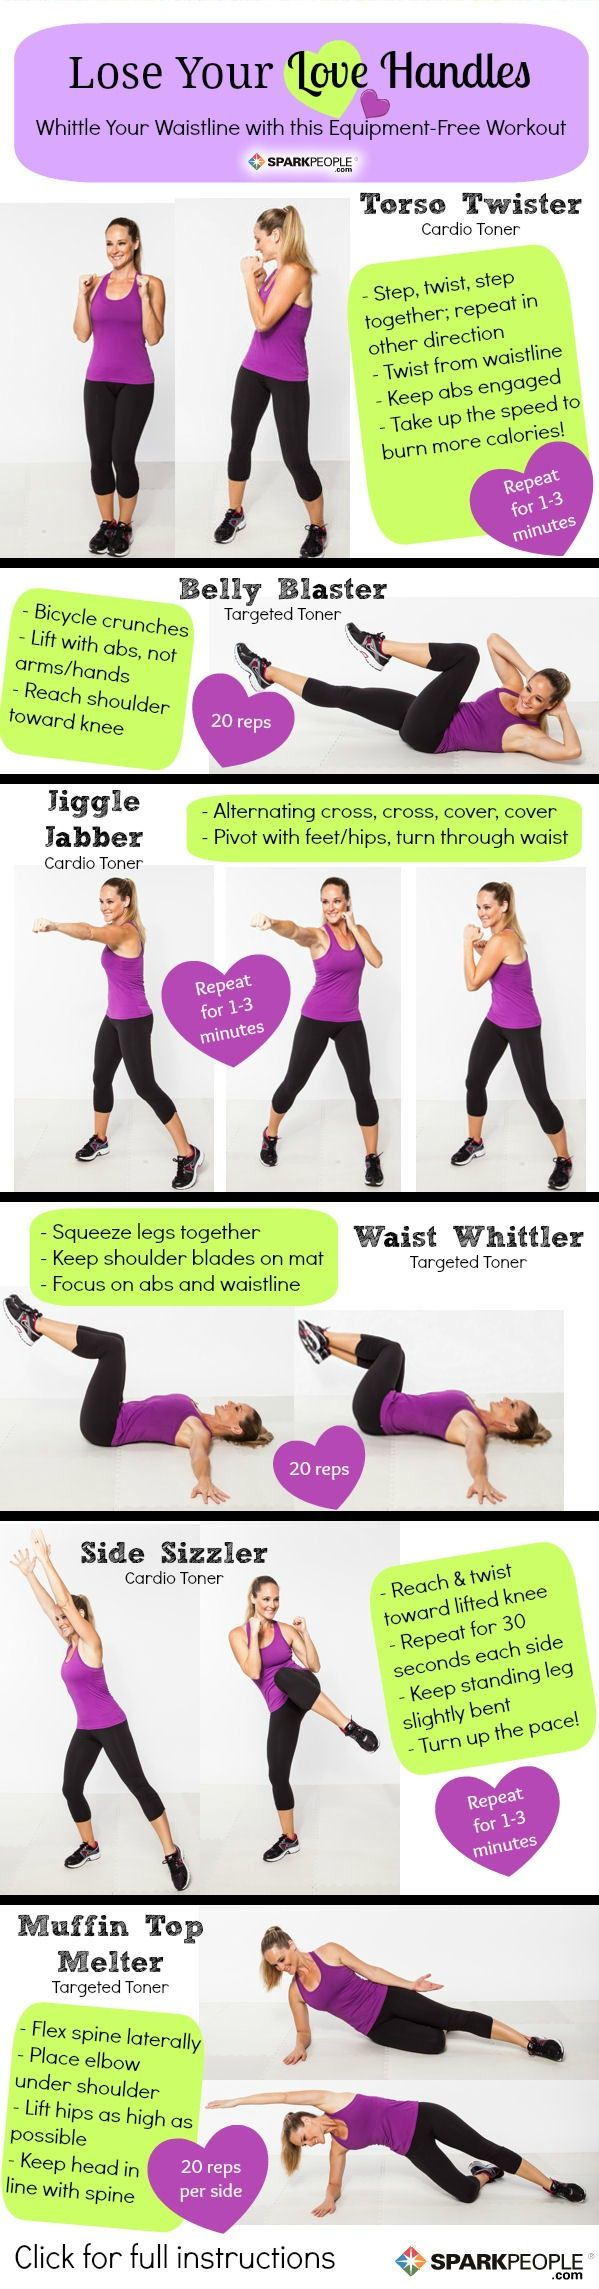 The 'Lose Your Love Handles' Workout: 6 Moves to Melt Your Muffin Top @Christie Moffatt Moffatt H - VDay workout?